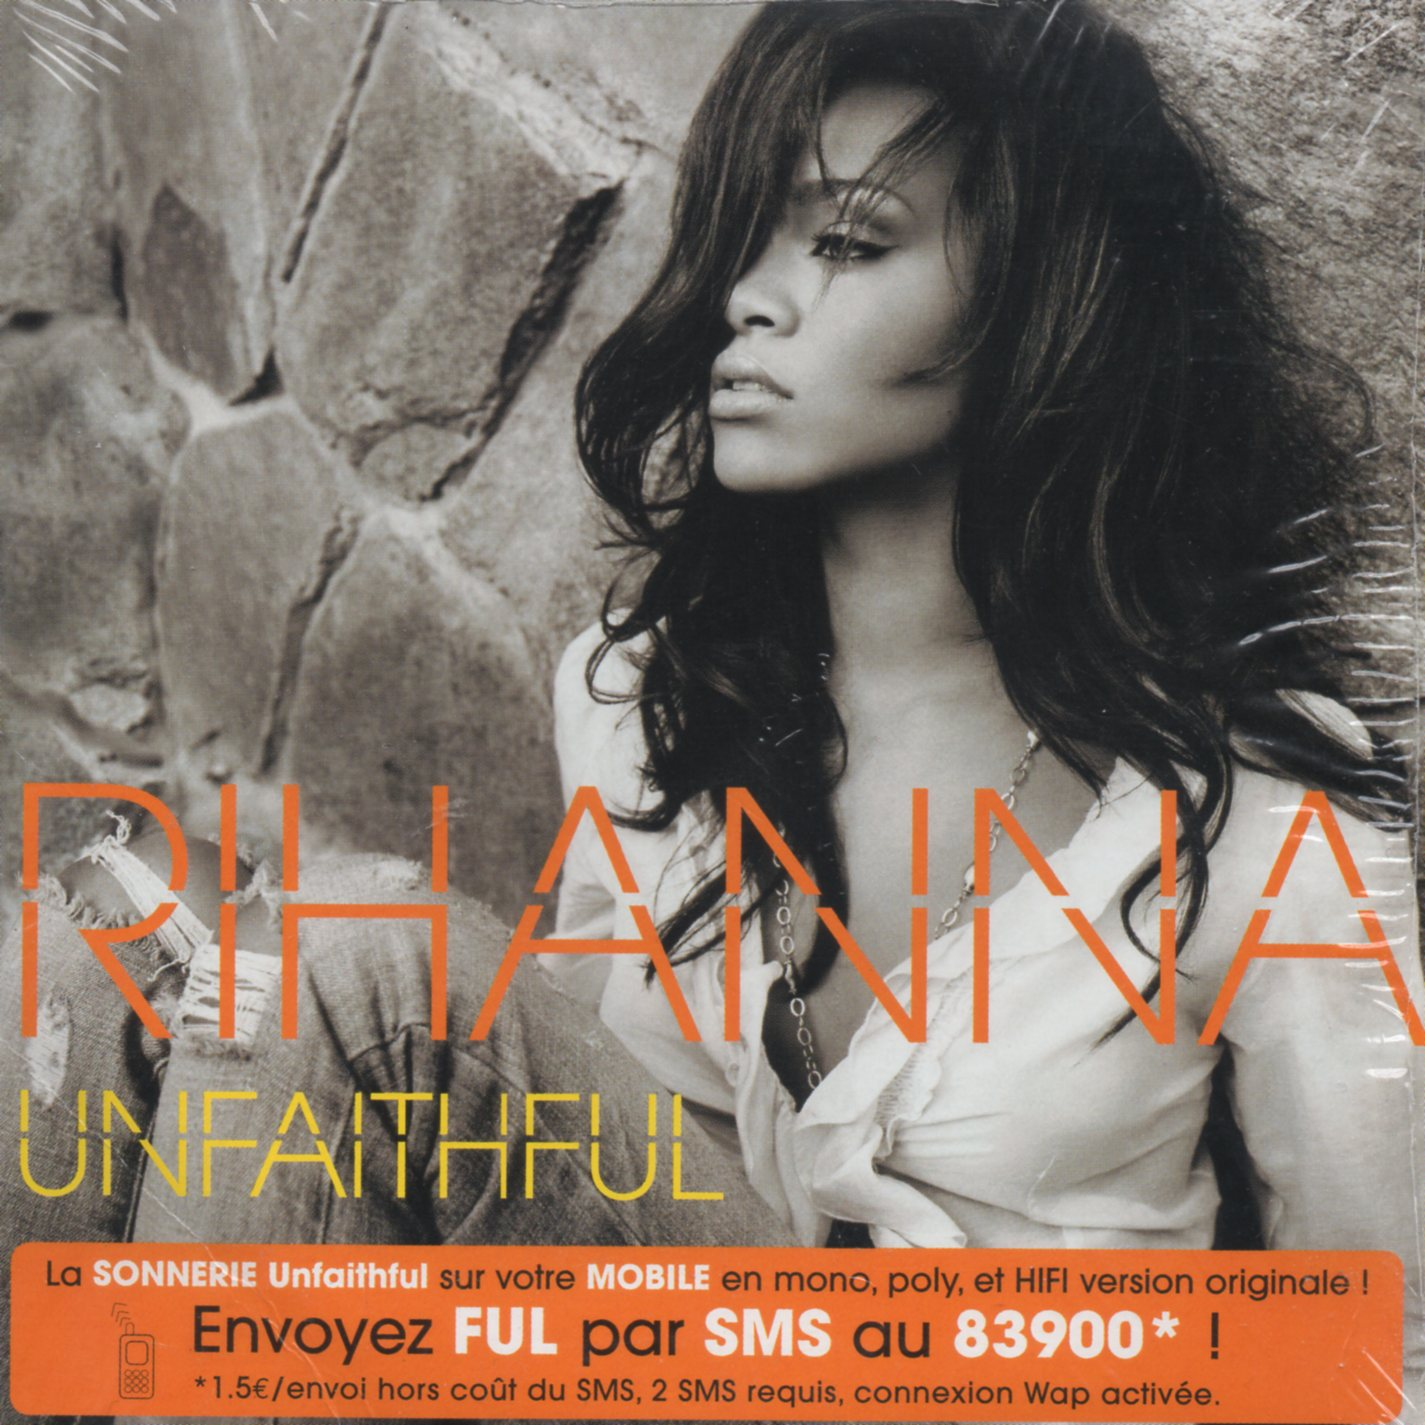 RIHANNA - Unfaithful 2-TRACK CARD SLEEVE - CD single